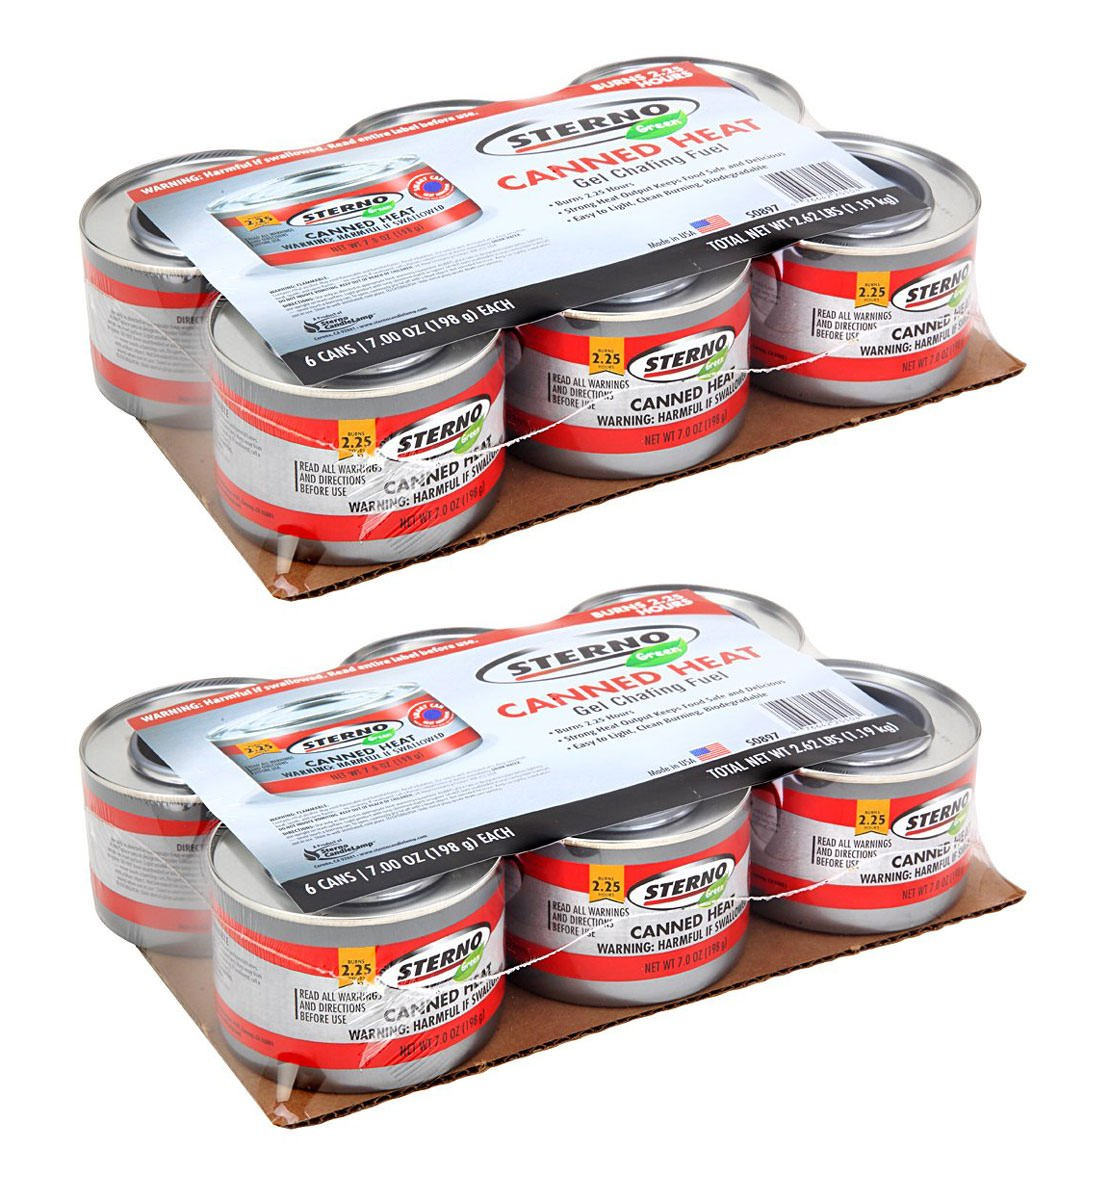 Sterno IUYEHDUH 20504 7-Ounce Entertainment Cooking Fuel, 6-Pack of 2 Pack by Sterno (Image #1)